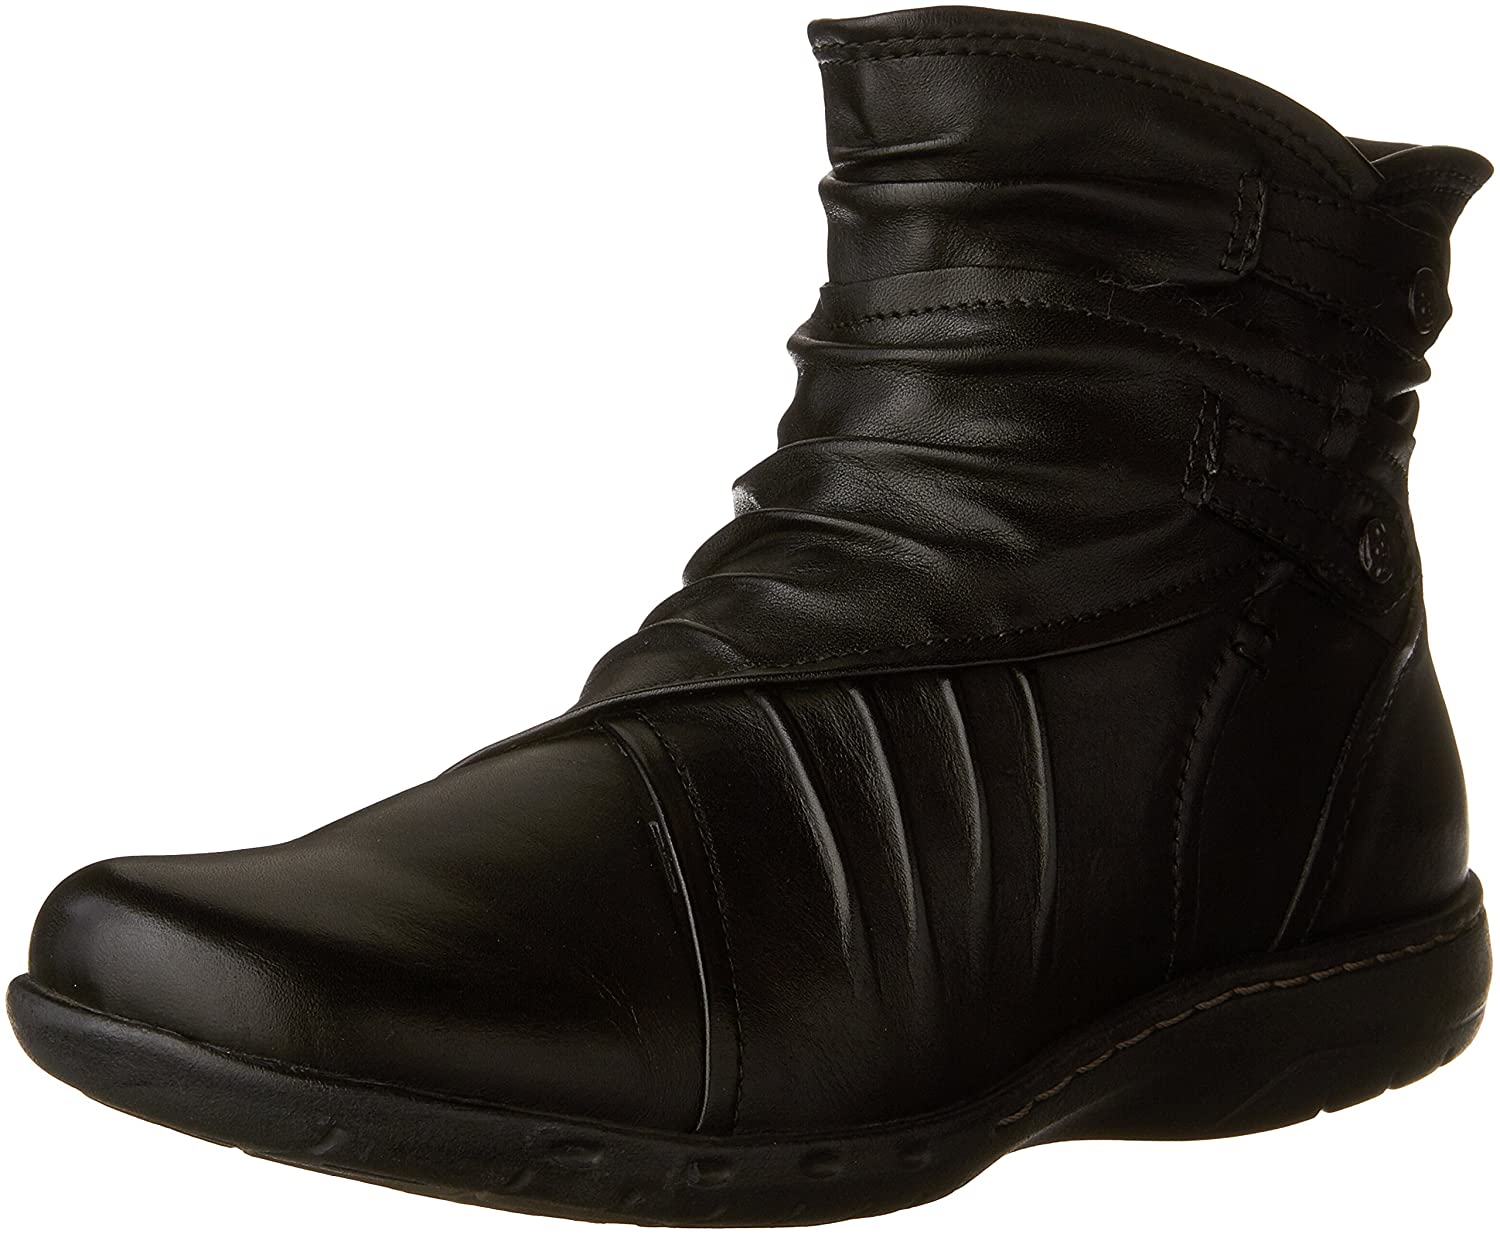 Cobb Boot Hill Rockport Women's Pandora Boot Cobb B00B9FXJ9O 8 B(M) US|Black de631c